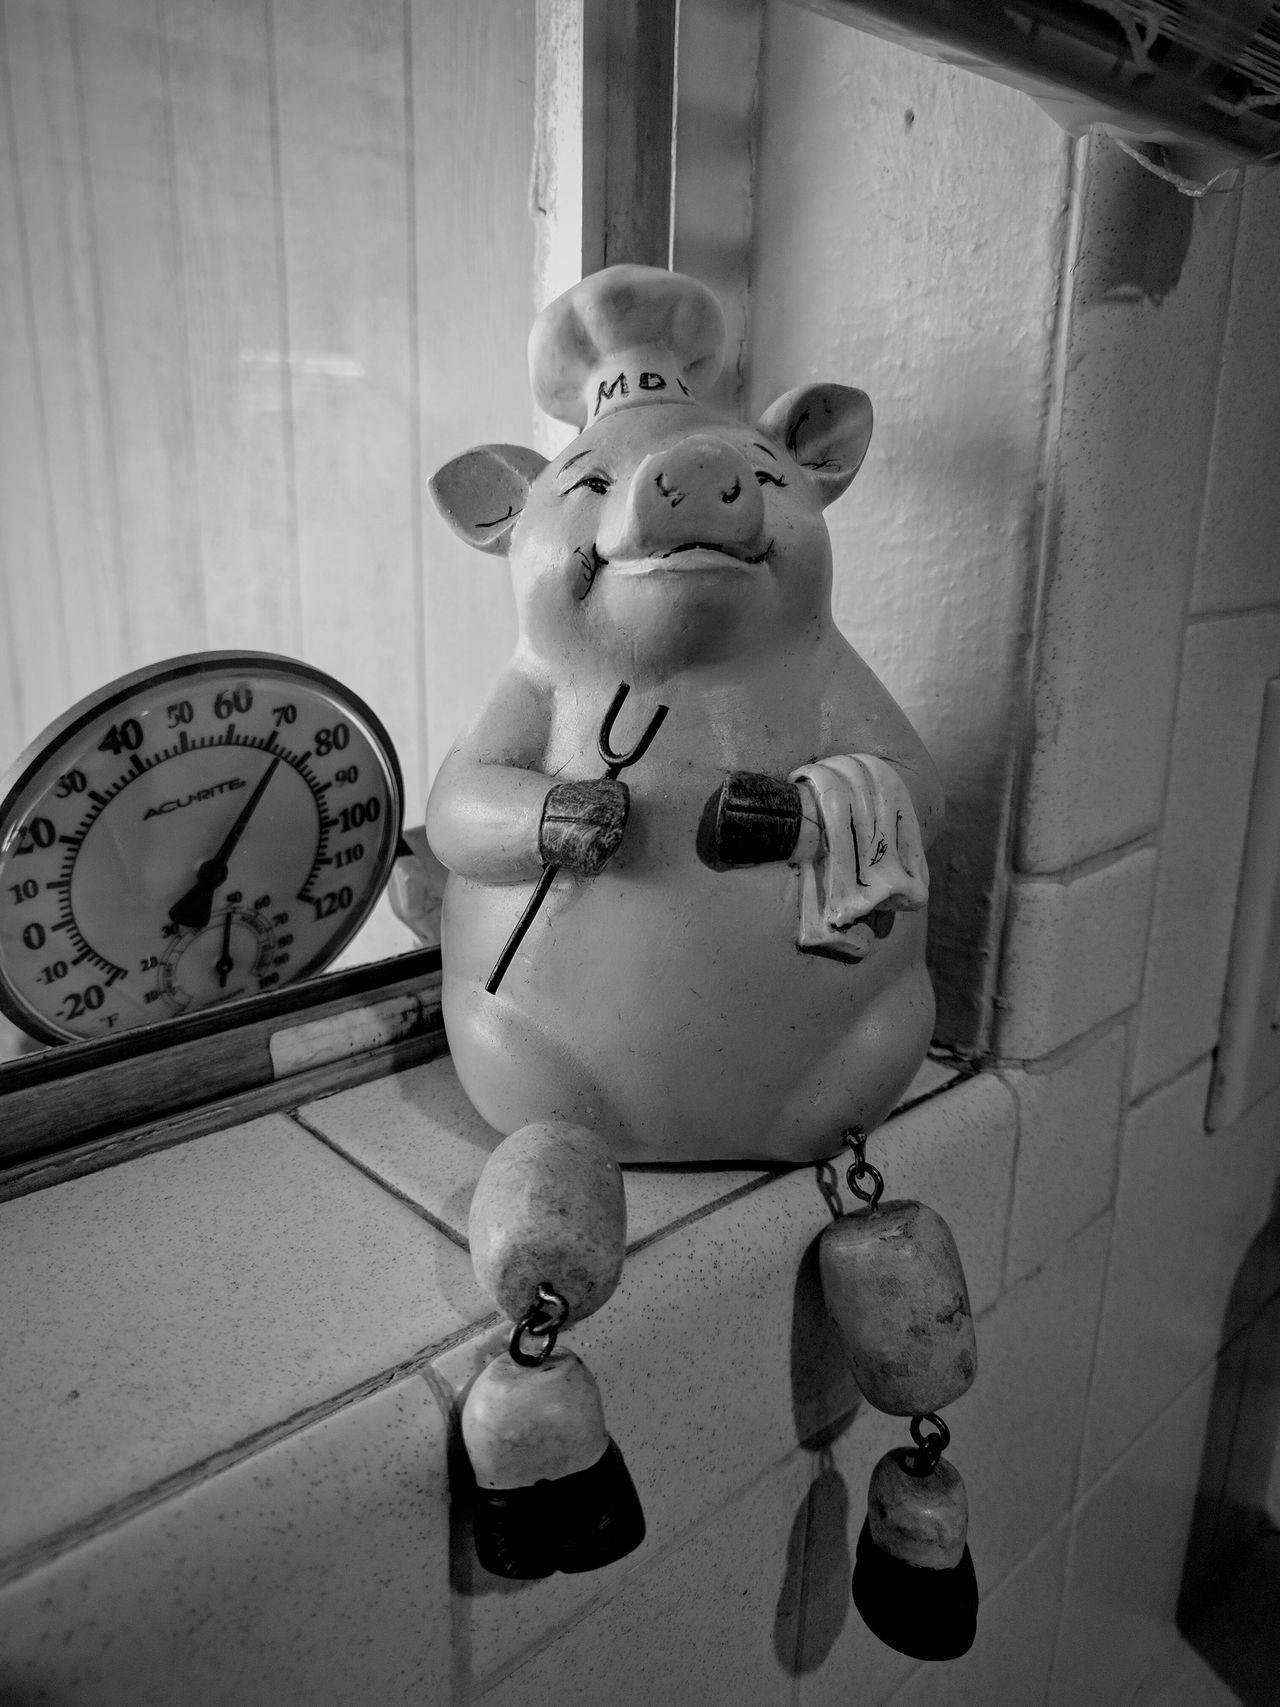 because i think this is too cute (bnw change up) Indoor Photography Little Piggy Mamas Kitchen Taking Photos Close-up EyeEm Bnw By The Window EyeEm Gallery Something Different Bnw Looking For Inspiration In The Kitchen Cute Change Up Kitchen Art Pig